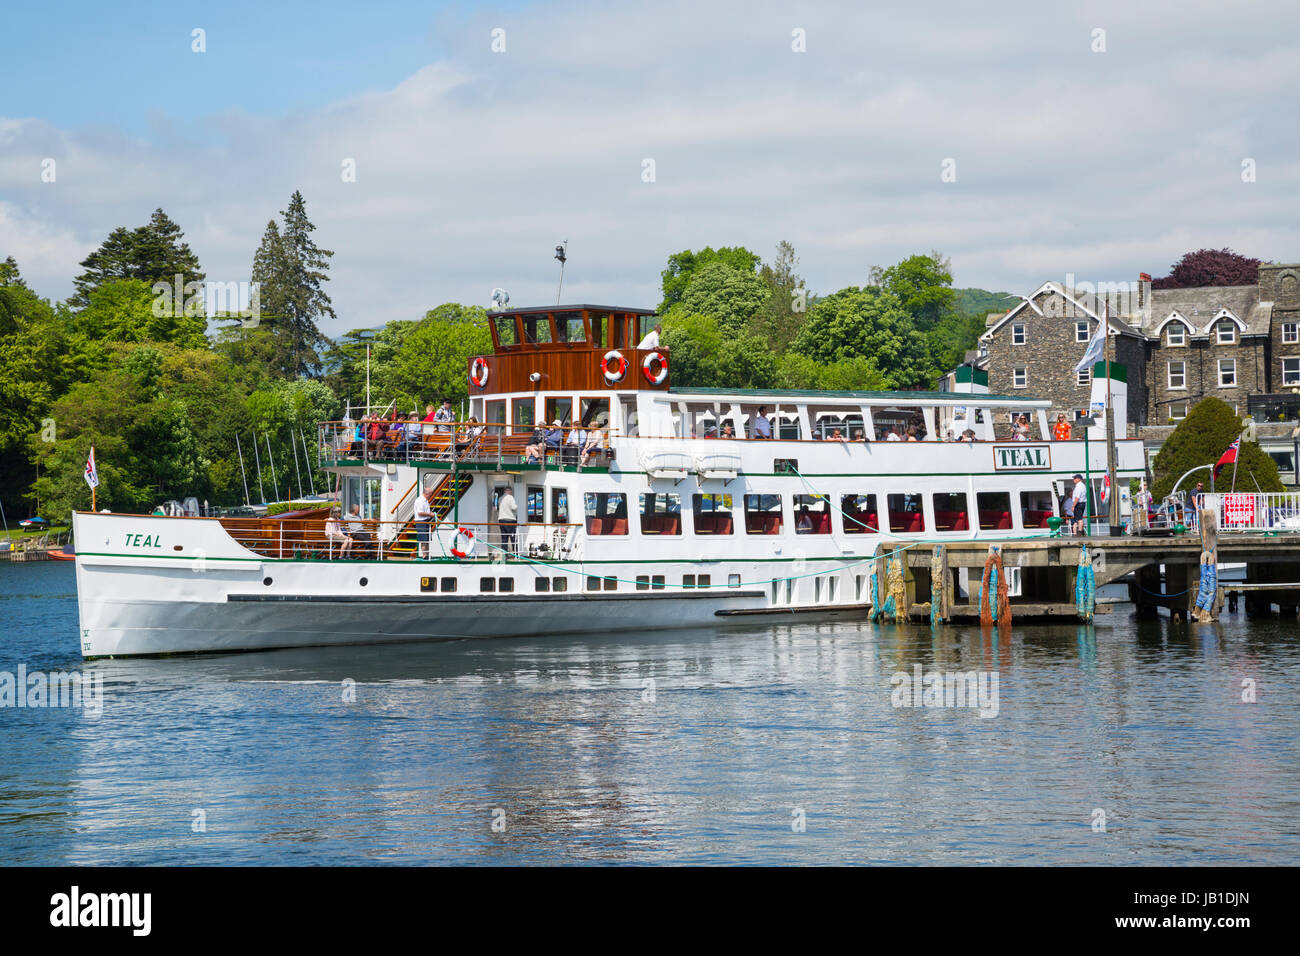 view passenger boat ship lake stockfotos view passenger boat ship lake bilder alamy. Black Bedroom Furniture Sets. Home Design Ideas